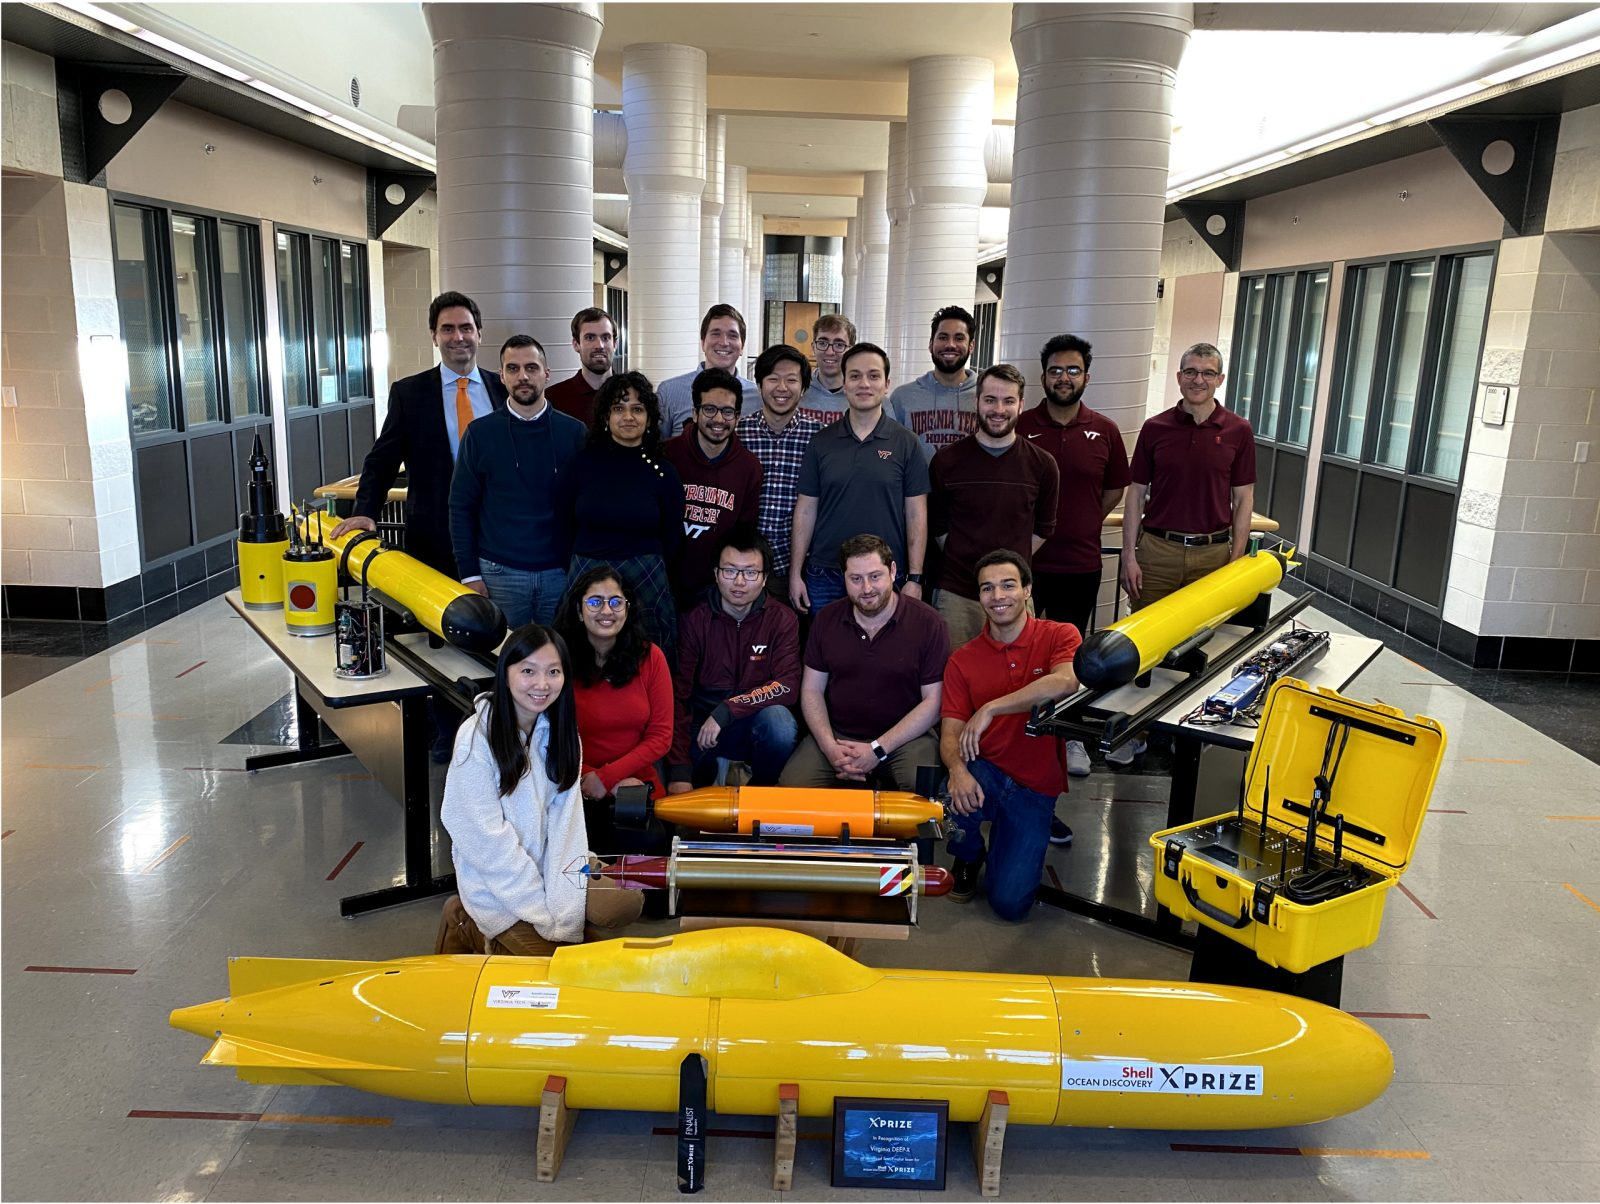 Dive Technologies and Virginia Tech Partner to Launch Novel Autonomous Underwater Vehicle